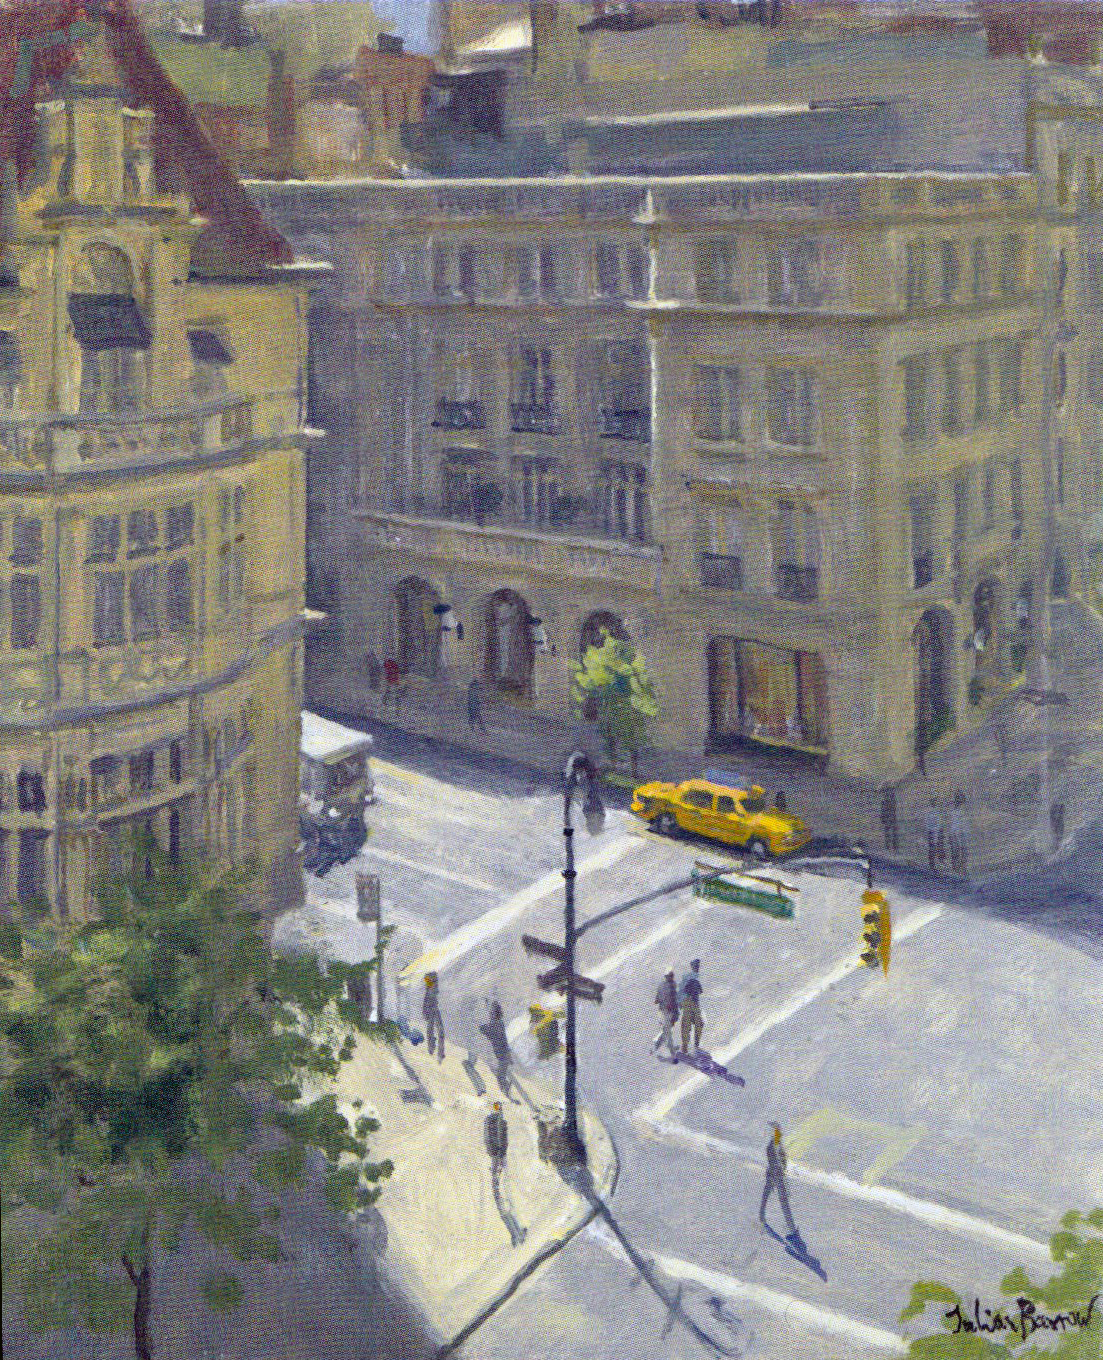 JULIAN BARROW    72nd Street & Madison Avenue, New York   Oil on canvas 12 x 10 inches (30.5 x 25.5 cm)  SOLD